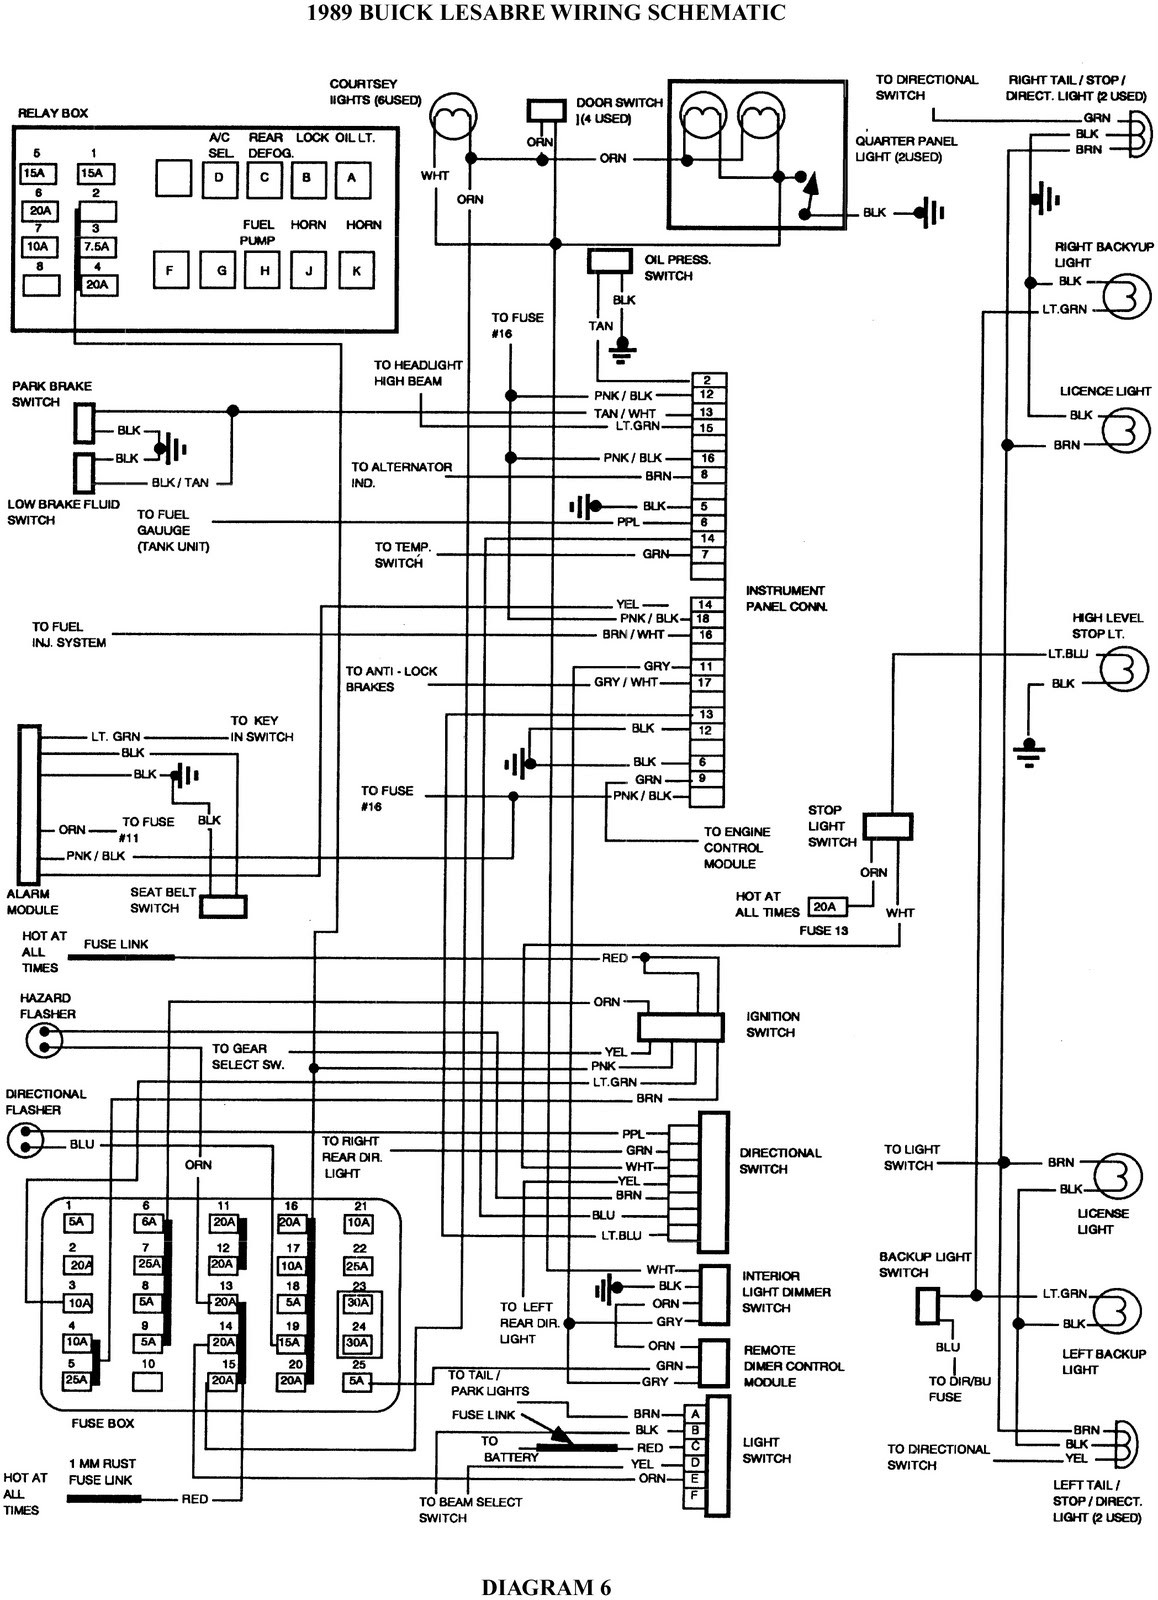 2002 buick rendezvous electrical diagram